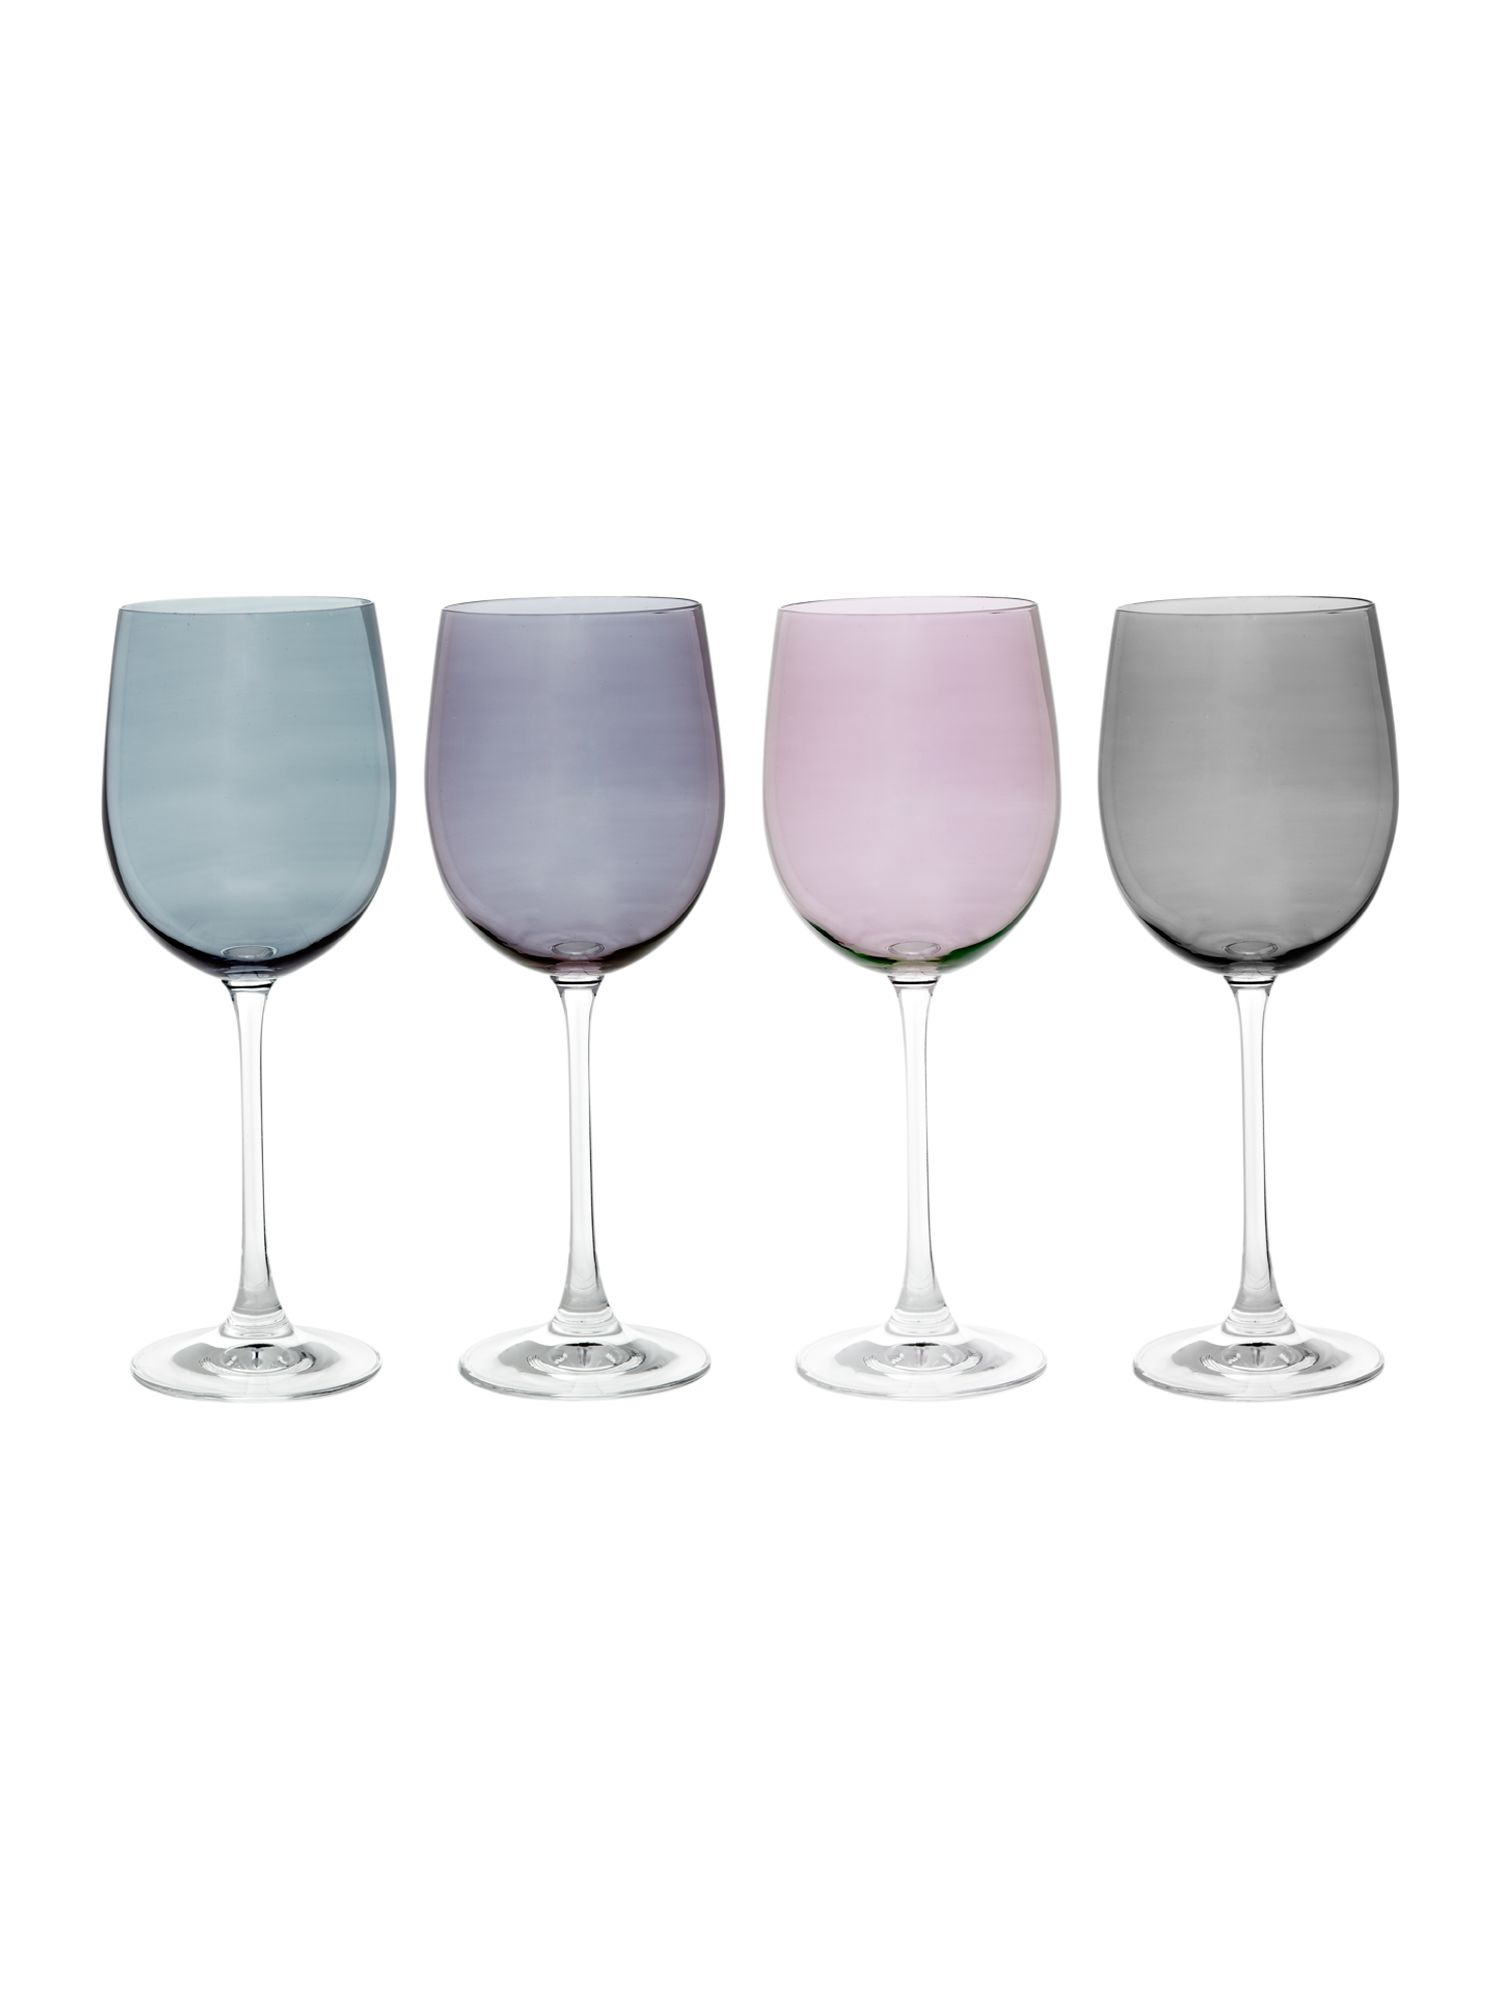 Lustre Wine glasses, box of 4